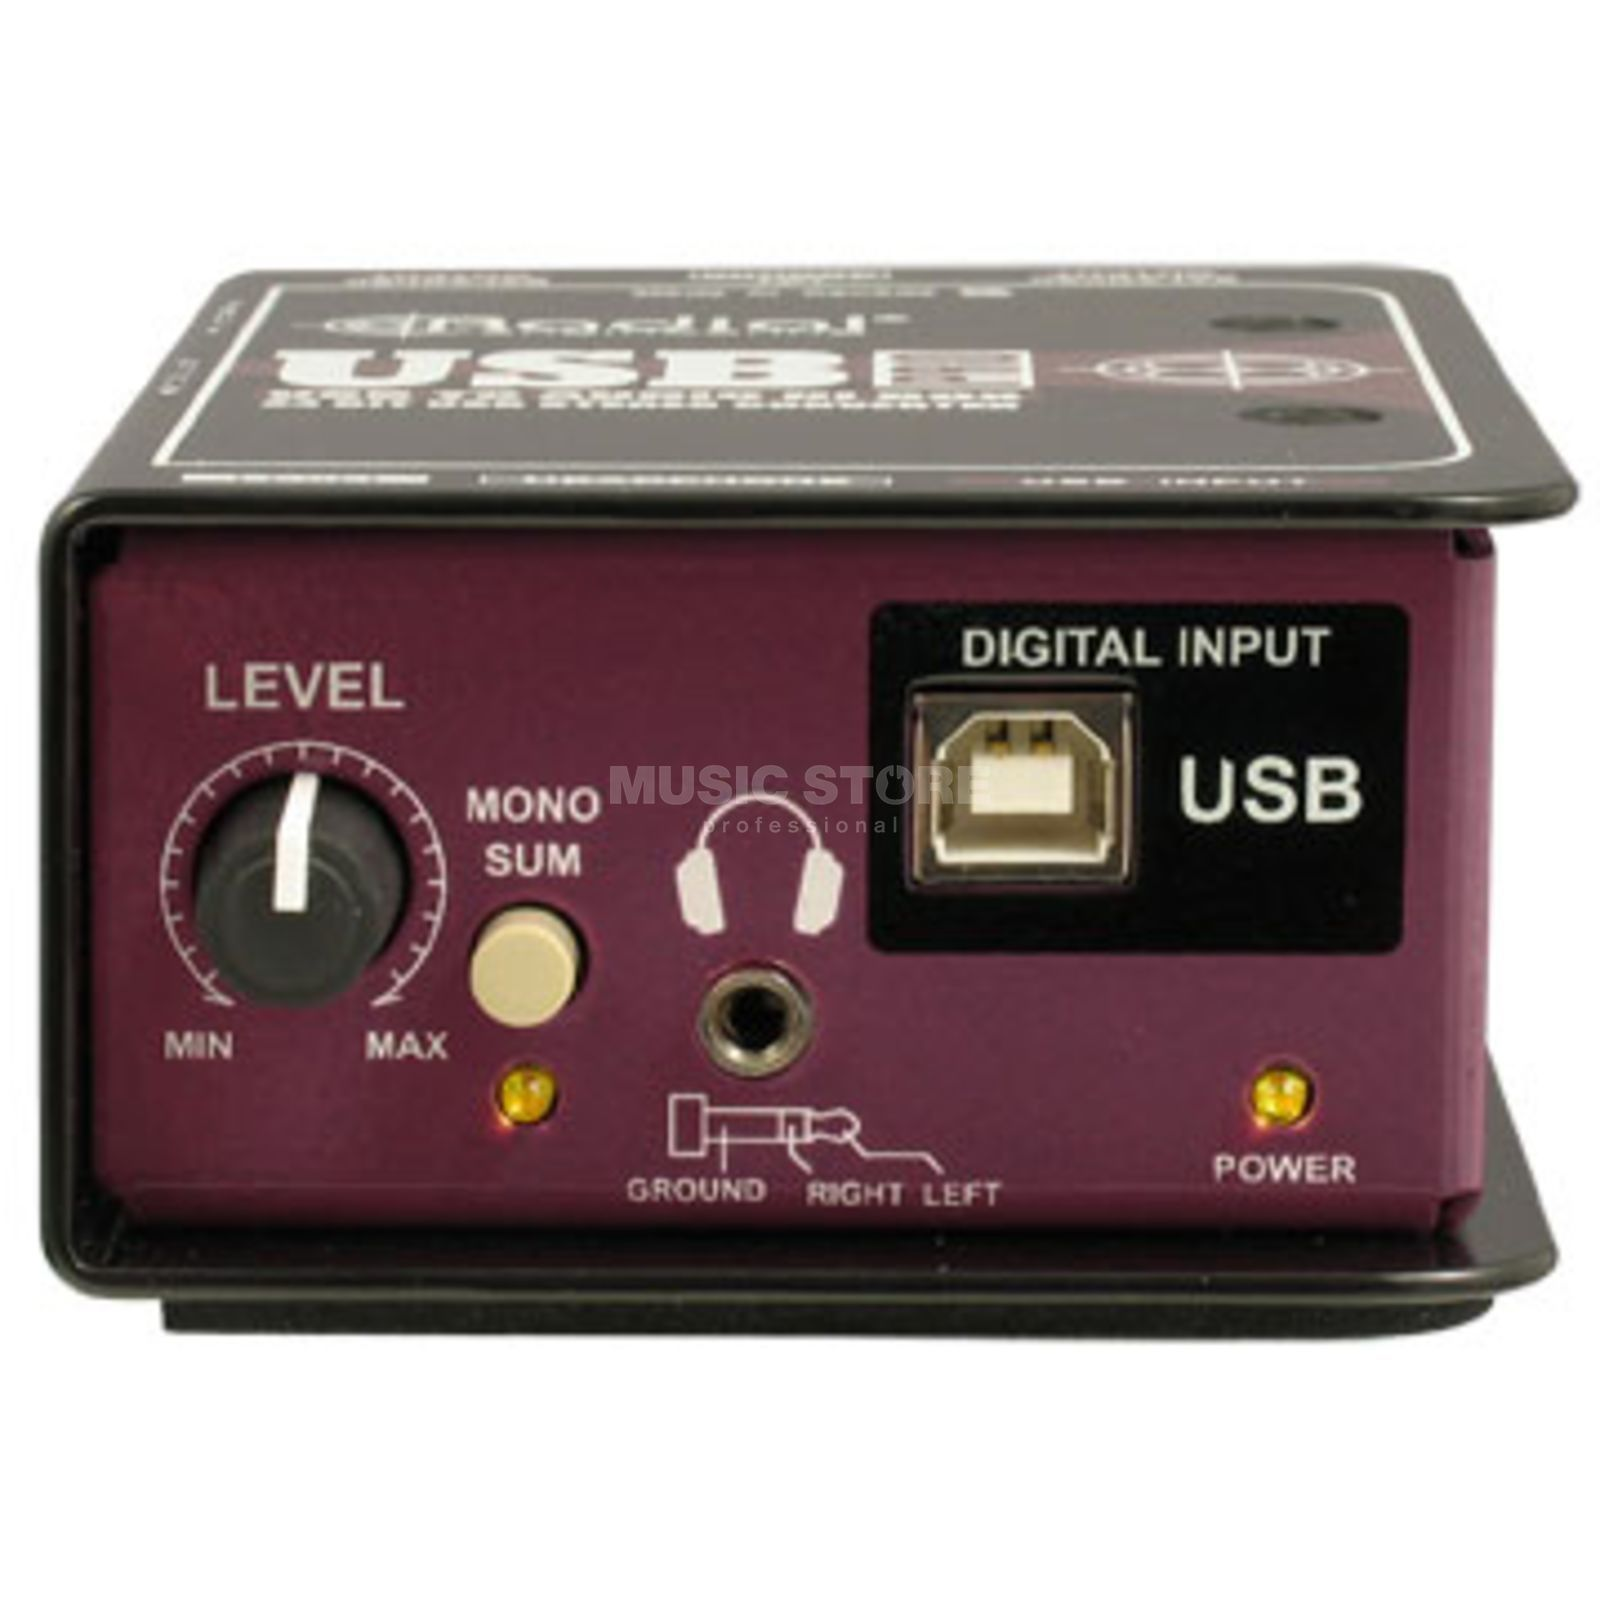 Radial USB-Pro USB Stereo-DI-Box Product Image